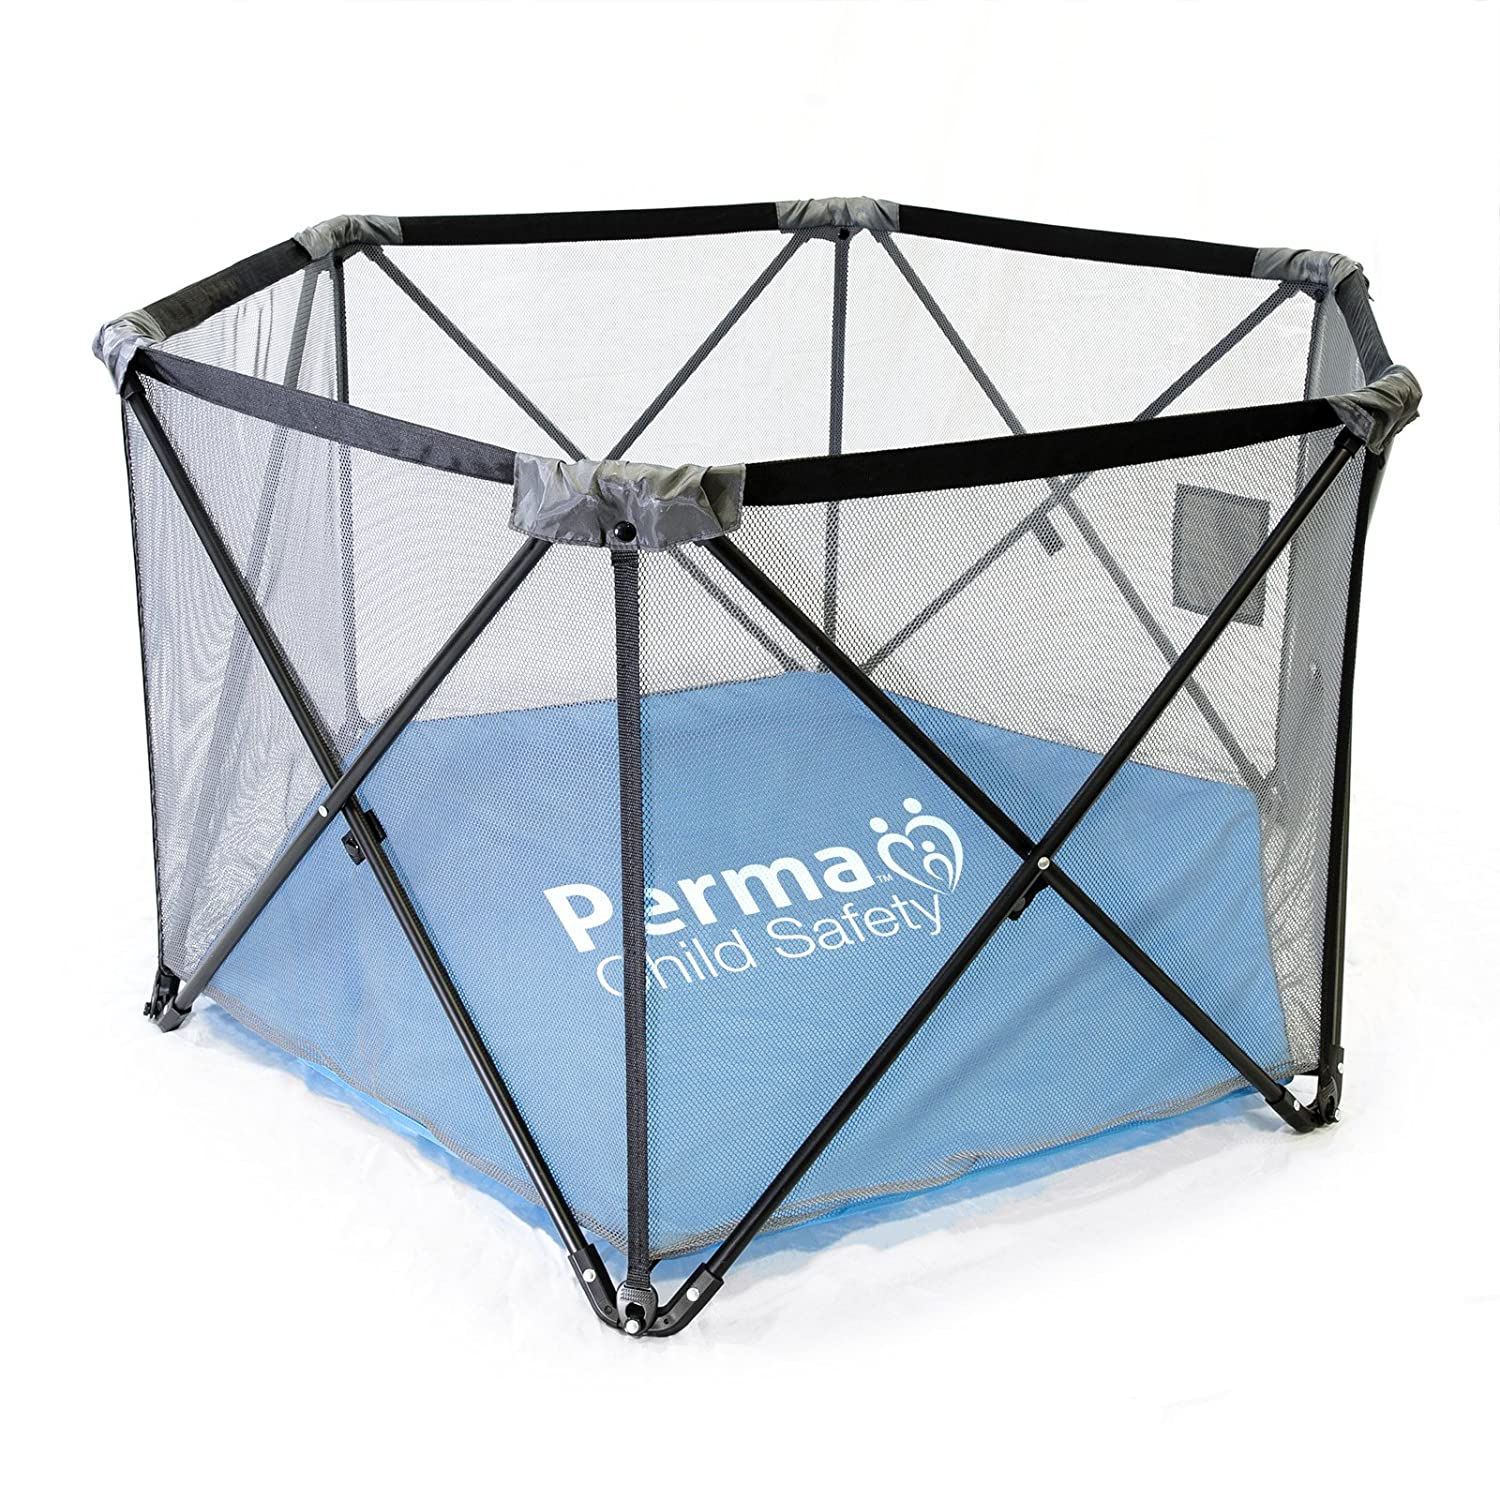 Perma Child Safety Pop Up Portable Fabric Playpen, Travel Play Yard, Black/Gray/Blue PERMA Products 2749